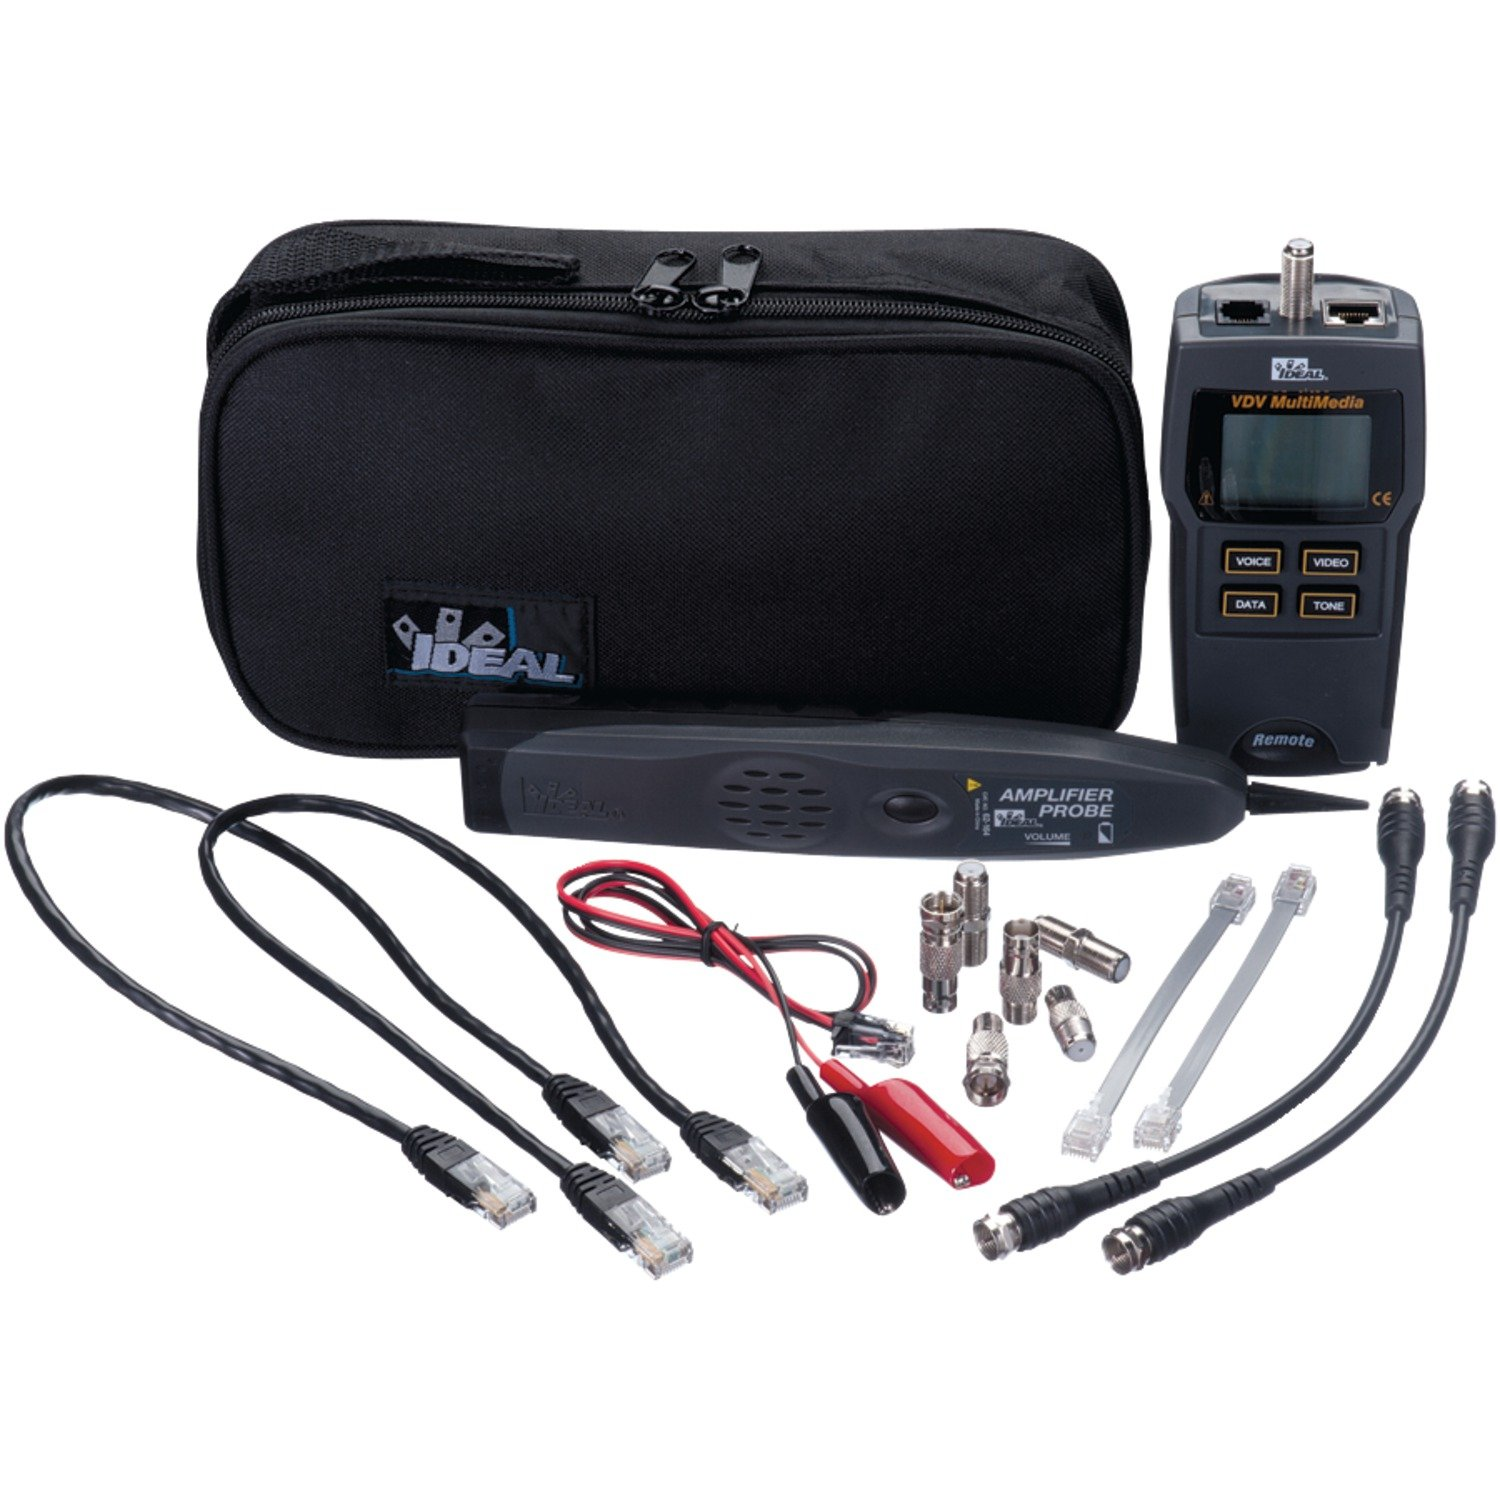 Ideal Industries 33-866 Test-Tone-Trace VDV Tester Kit Network by Ideal Industries